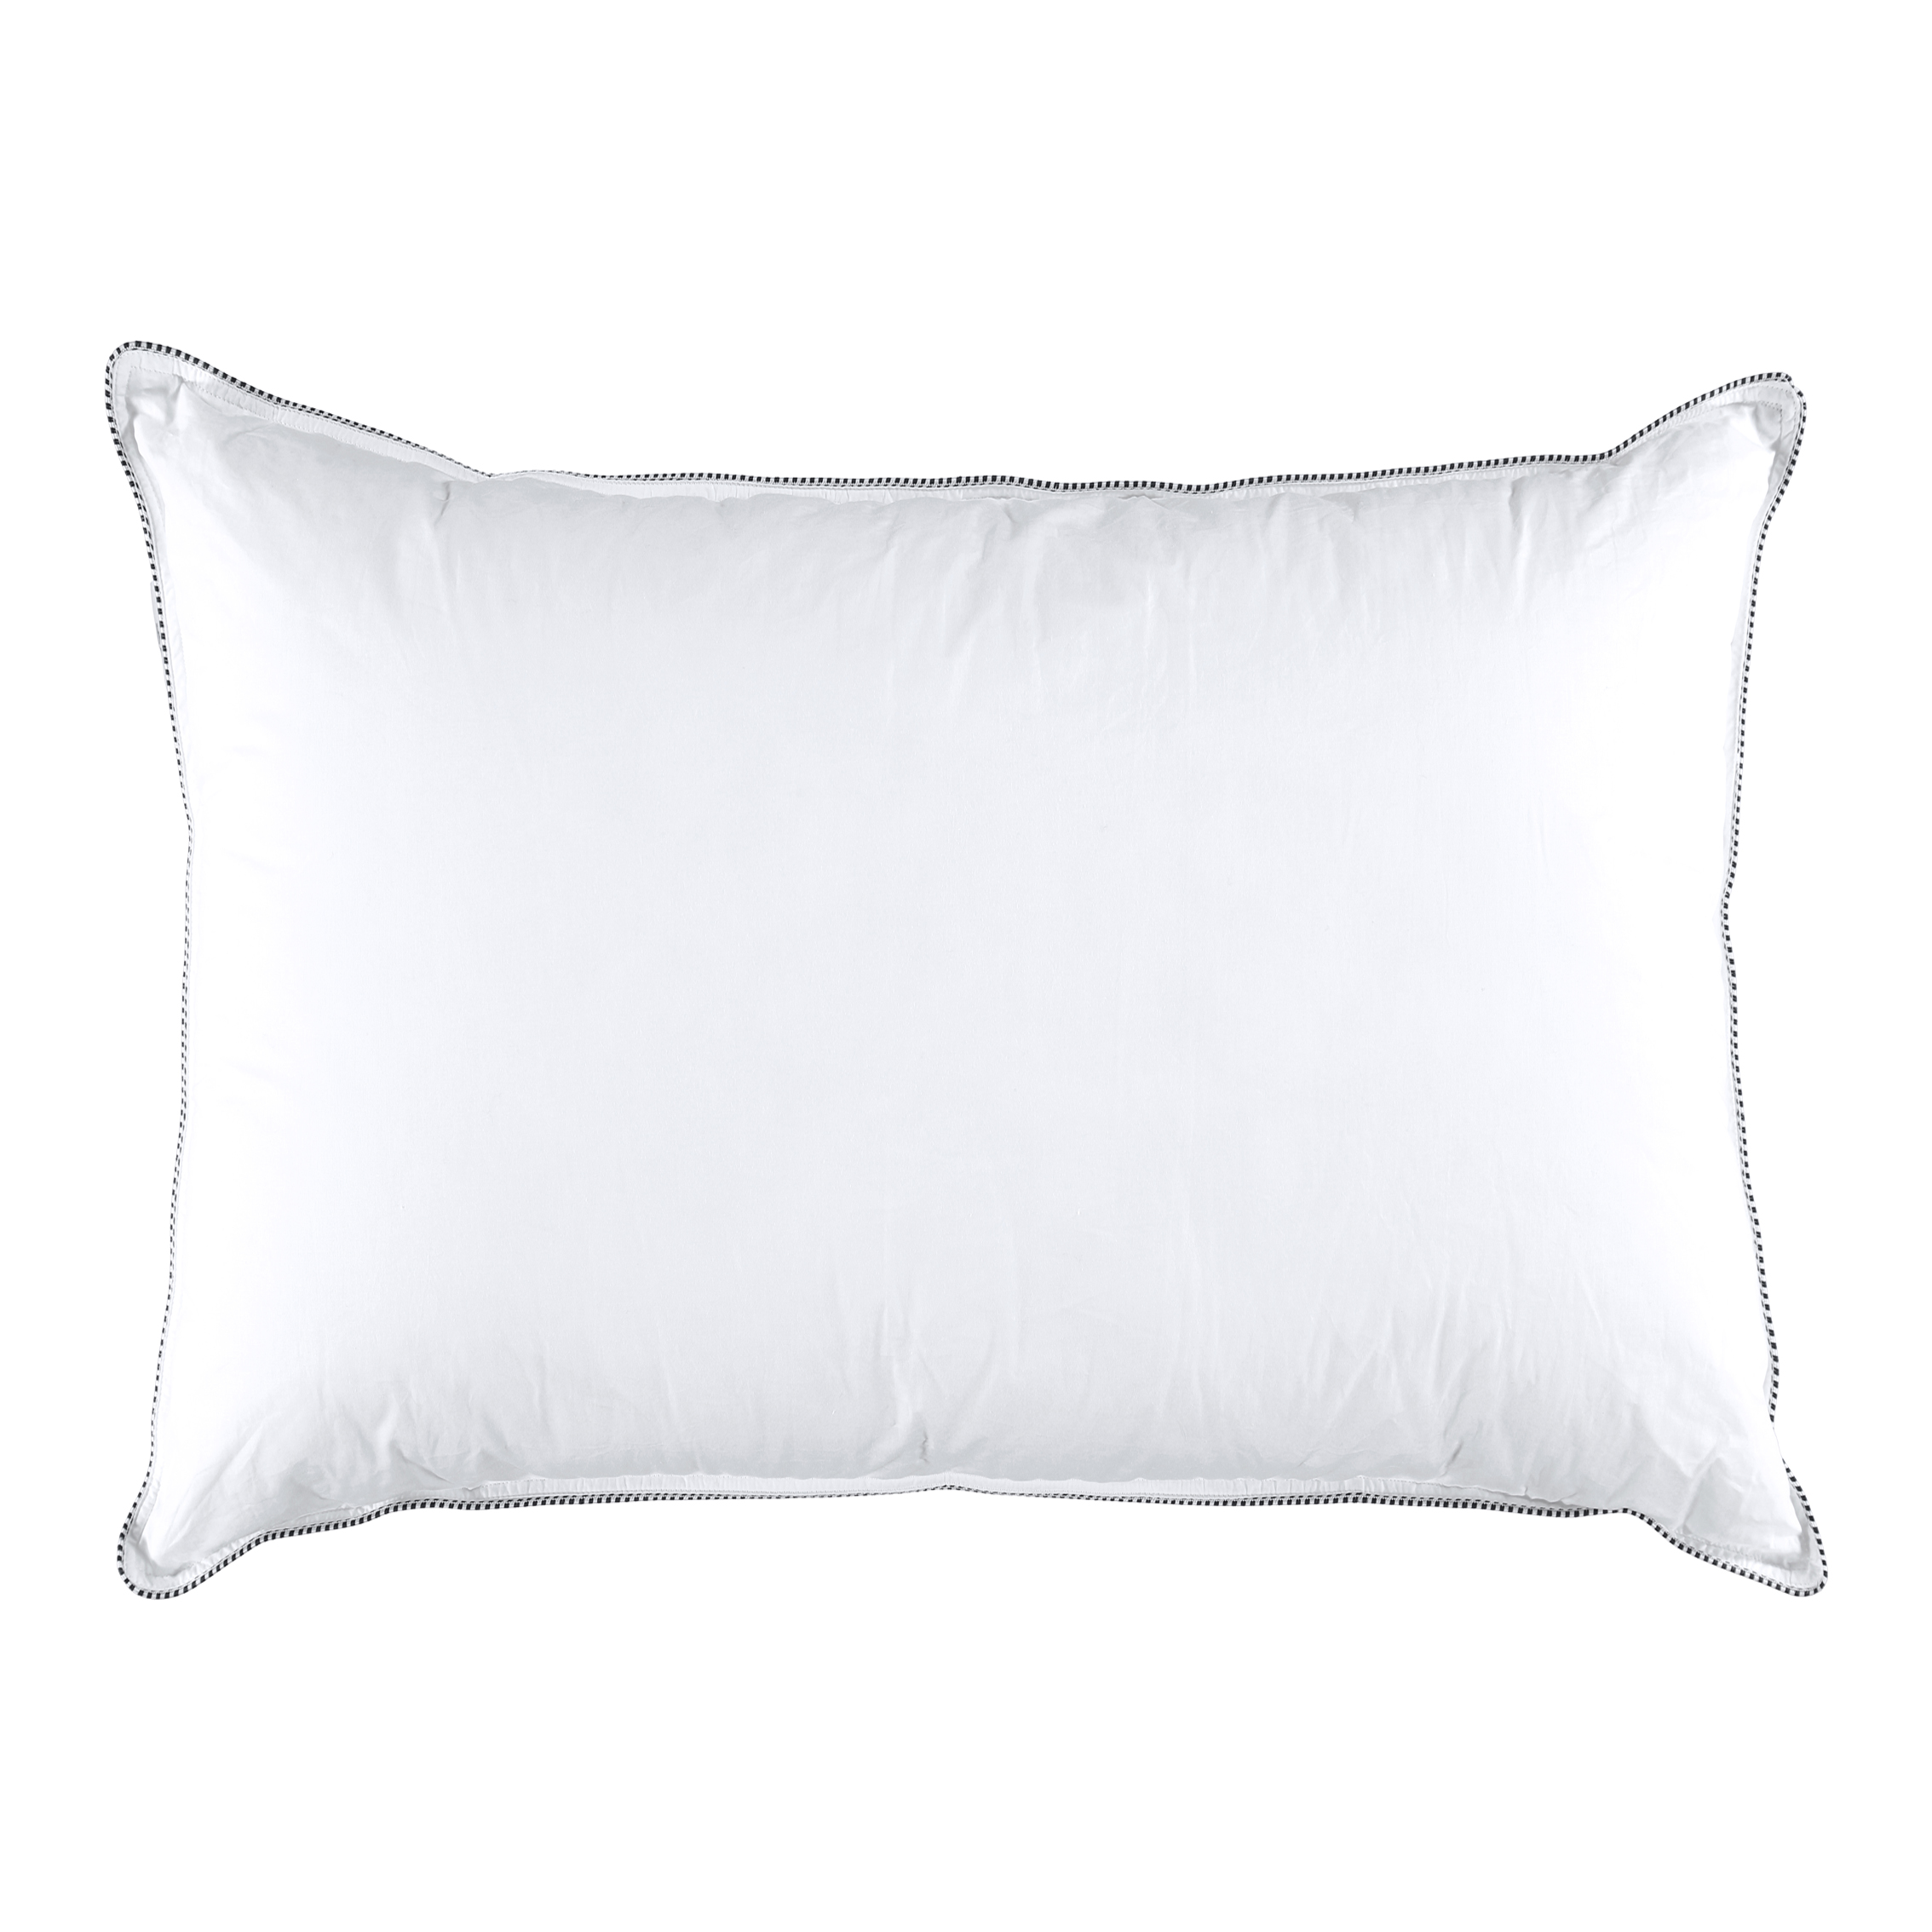 PILLOW NELSON MEDIUM 60X80 NAVY 60X80 CM